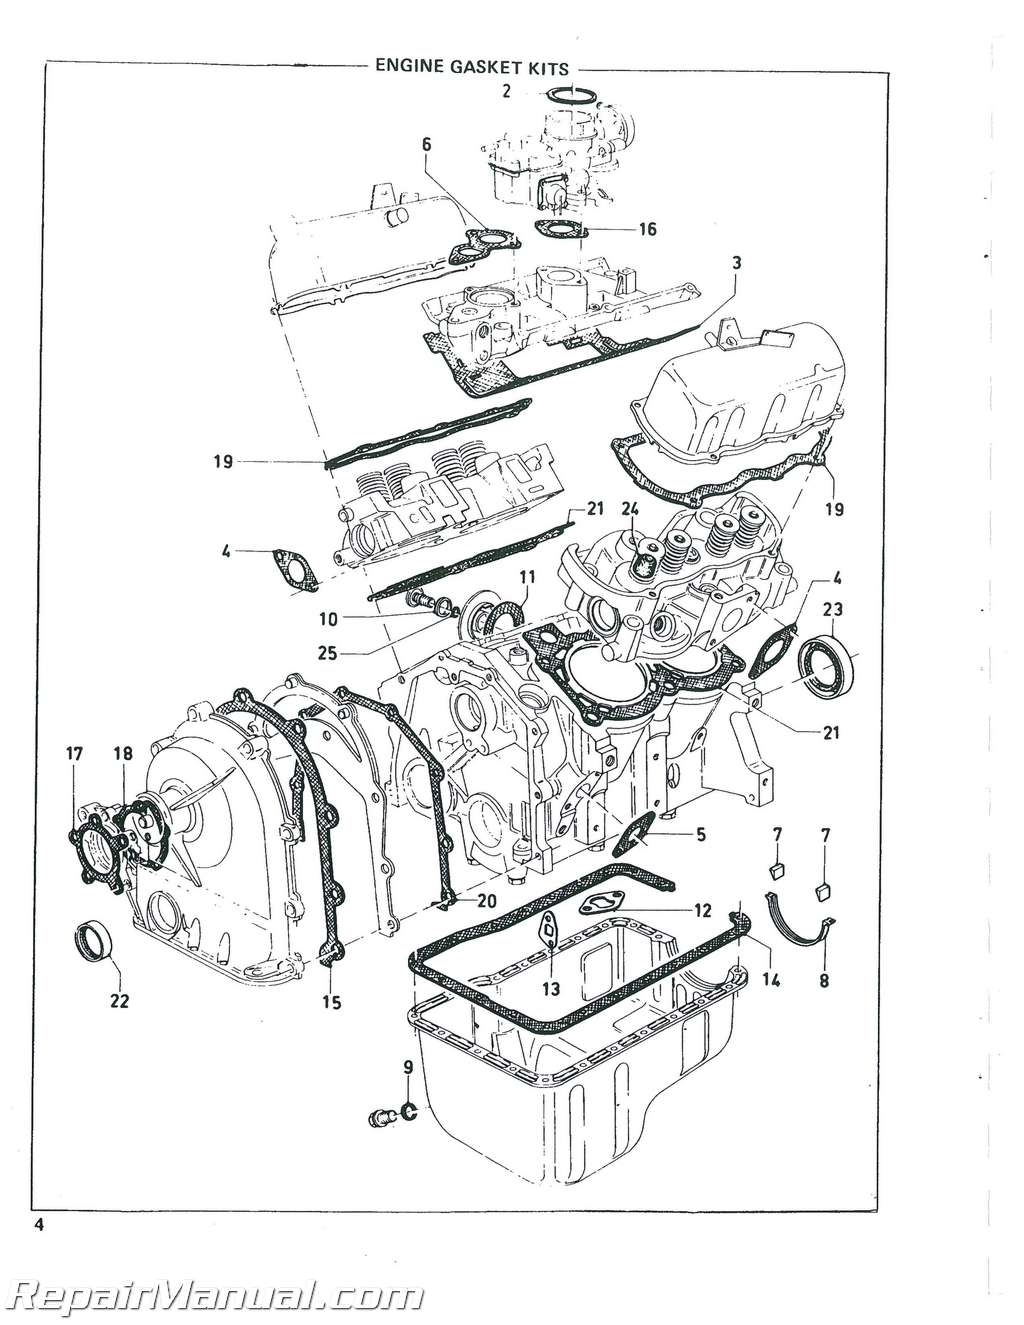 Ford Eng 104 V-4 Used in Various Skid Steers Parts Manual